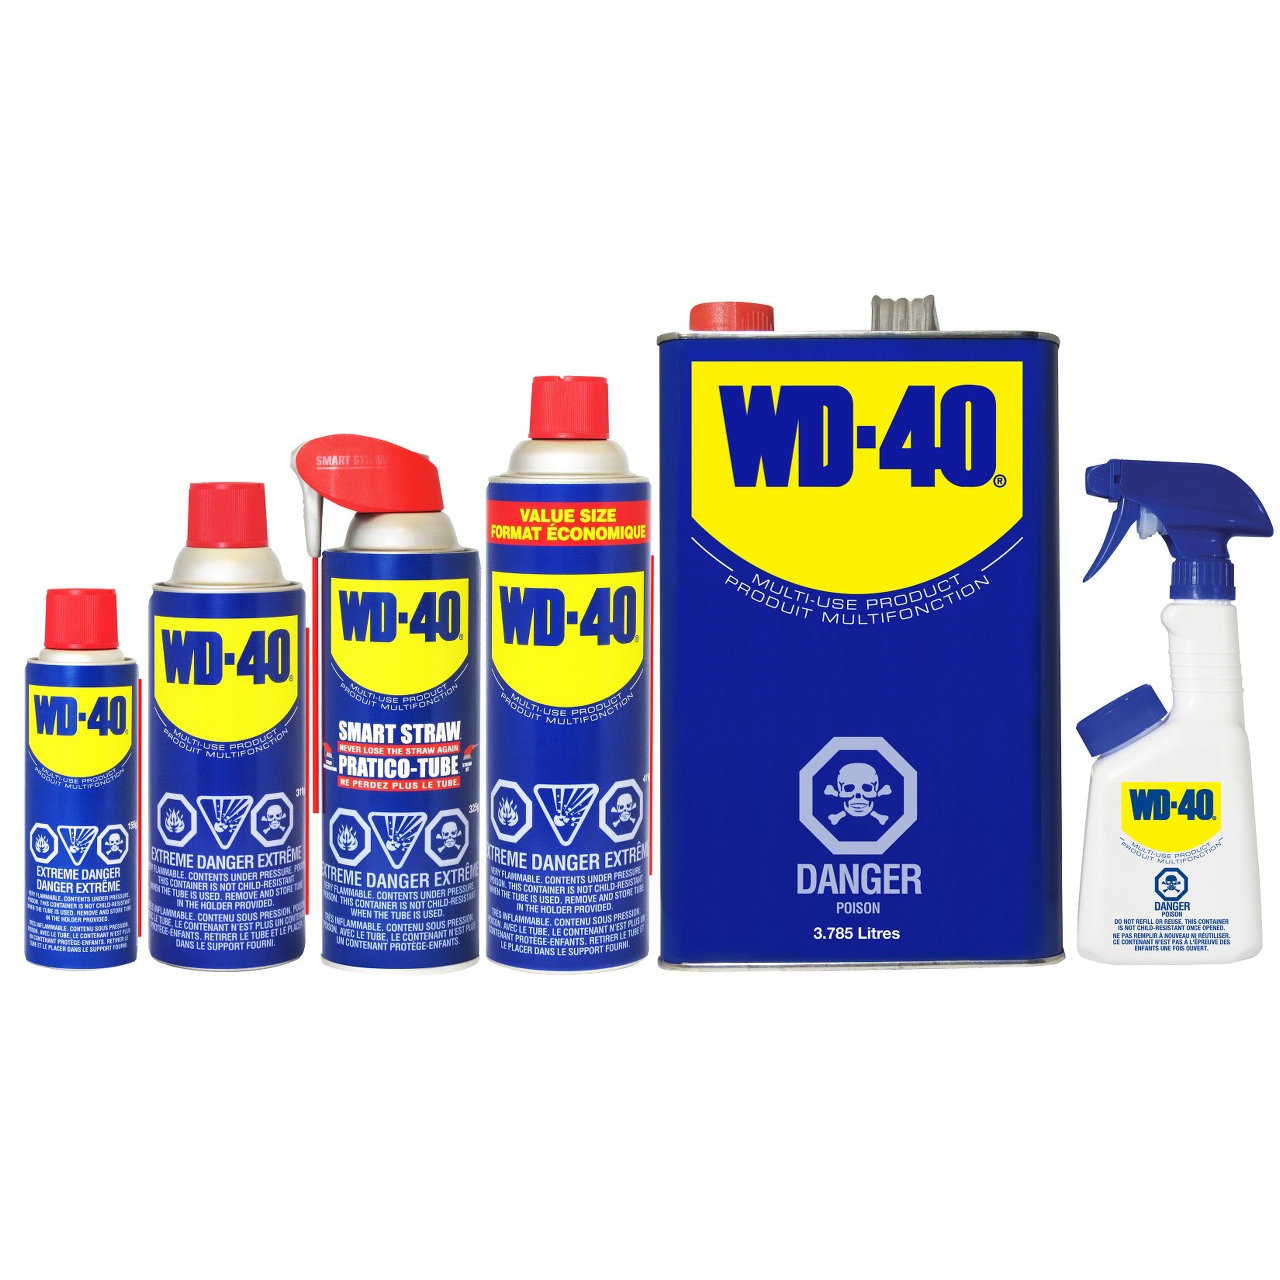 WD40 Multi Use Product (Lubricant) - (WDF01100)